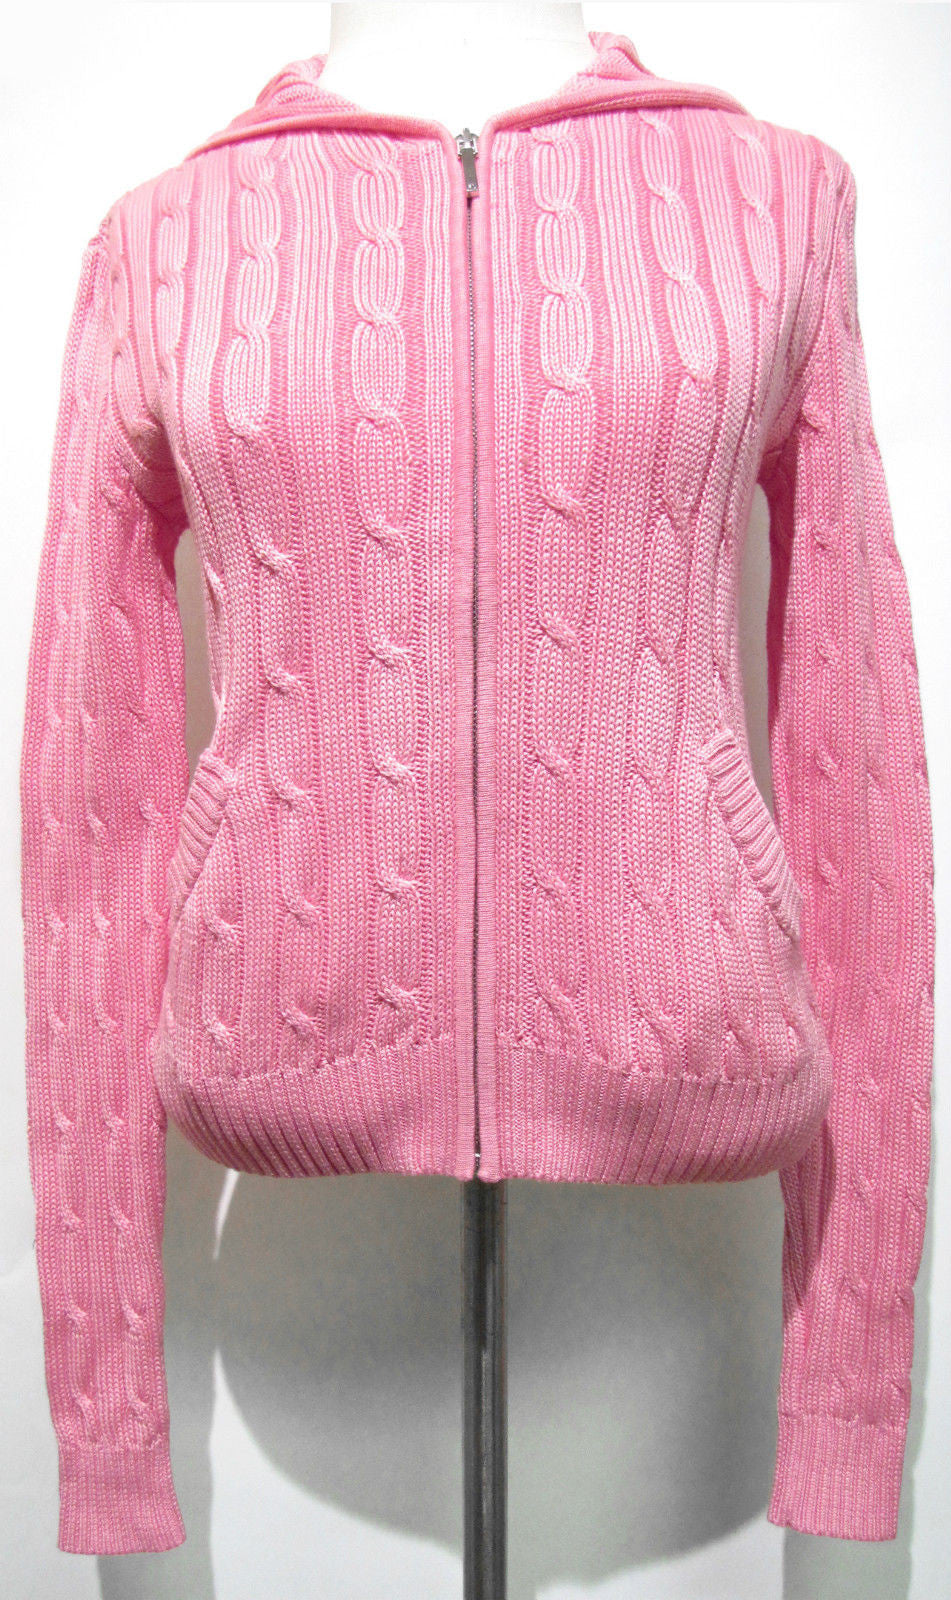 bisbiz.com RALPH LAUREN  Black Label  Pink Cotton Cable-Knit Hood Cardigan Sweater Top Size: Small - Bis Luxury Resale